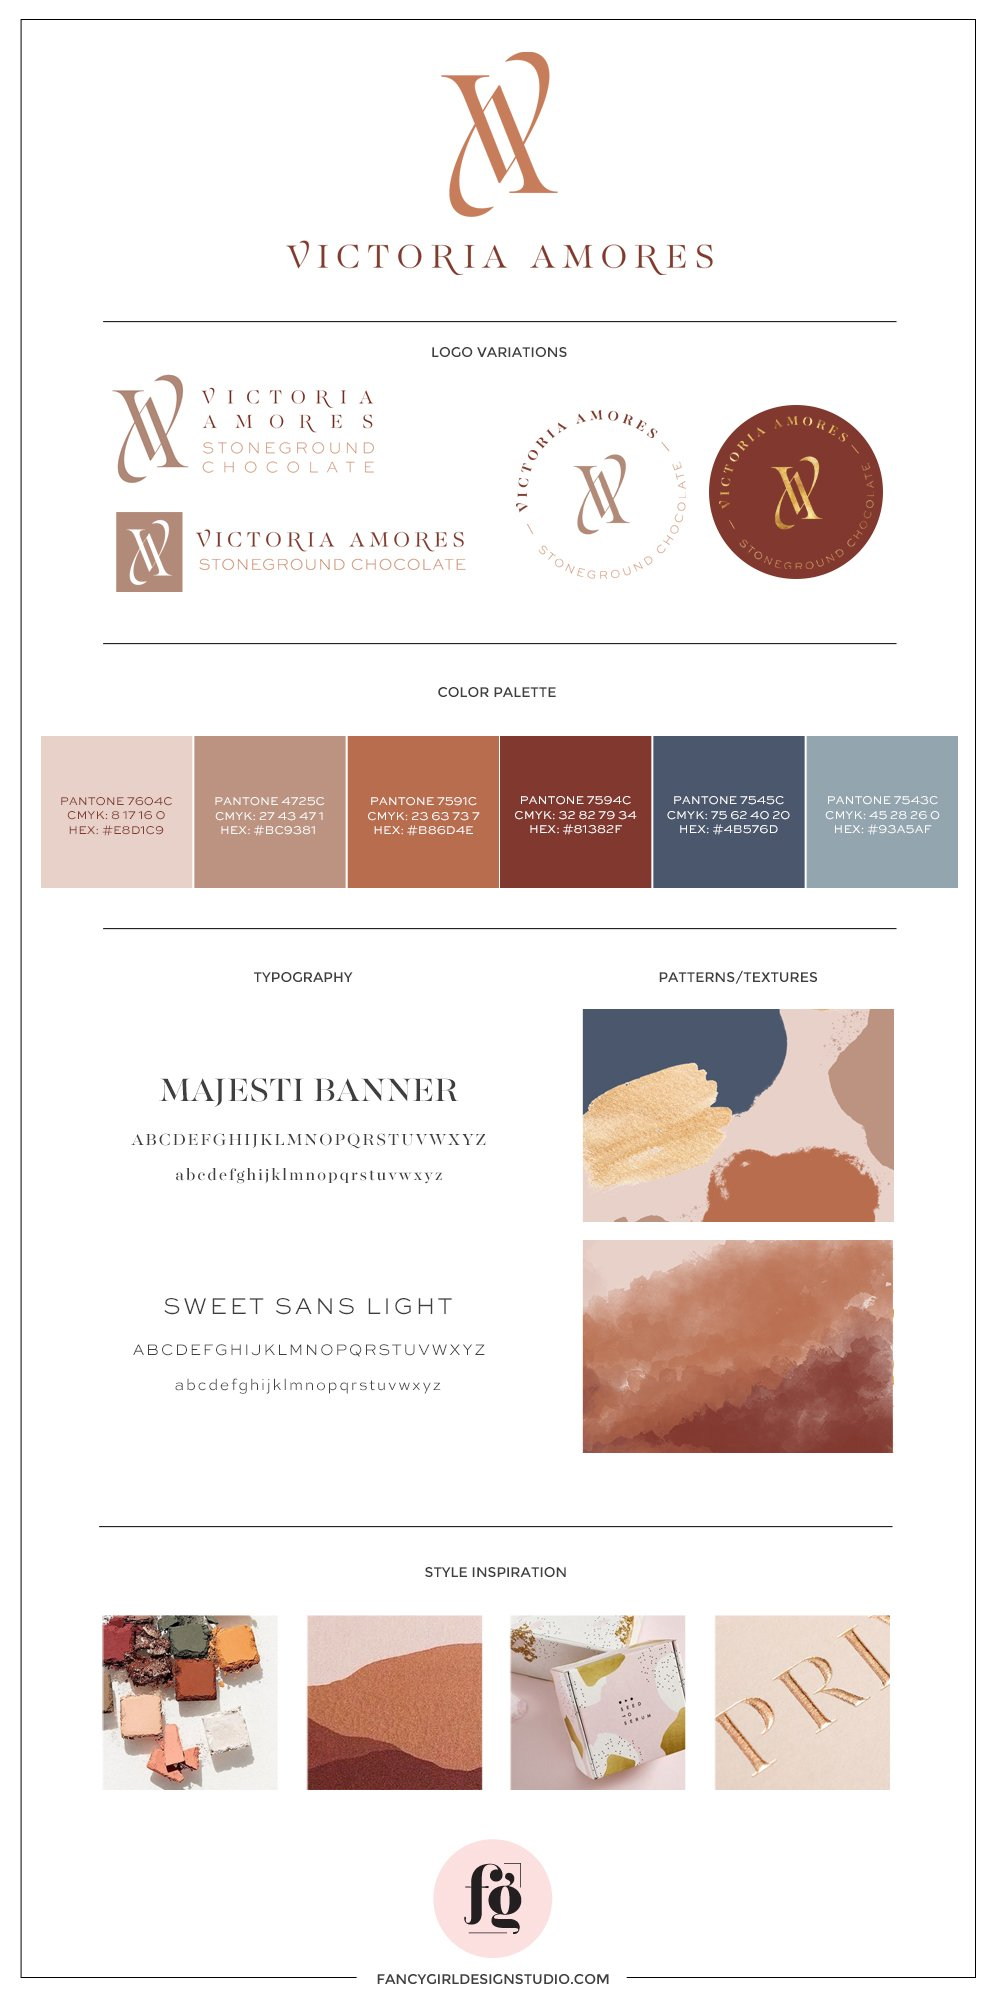 brand guide for Victoria Amores Chocolate | Designed by Fancy Girl Design Studio